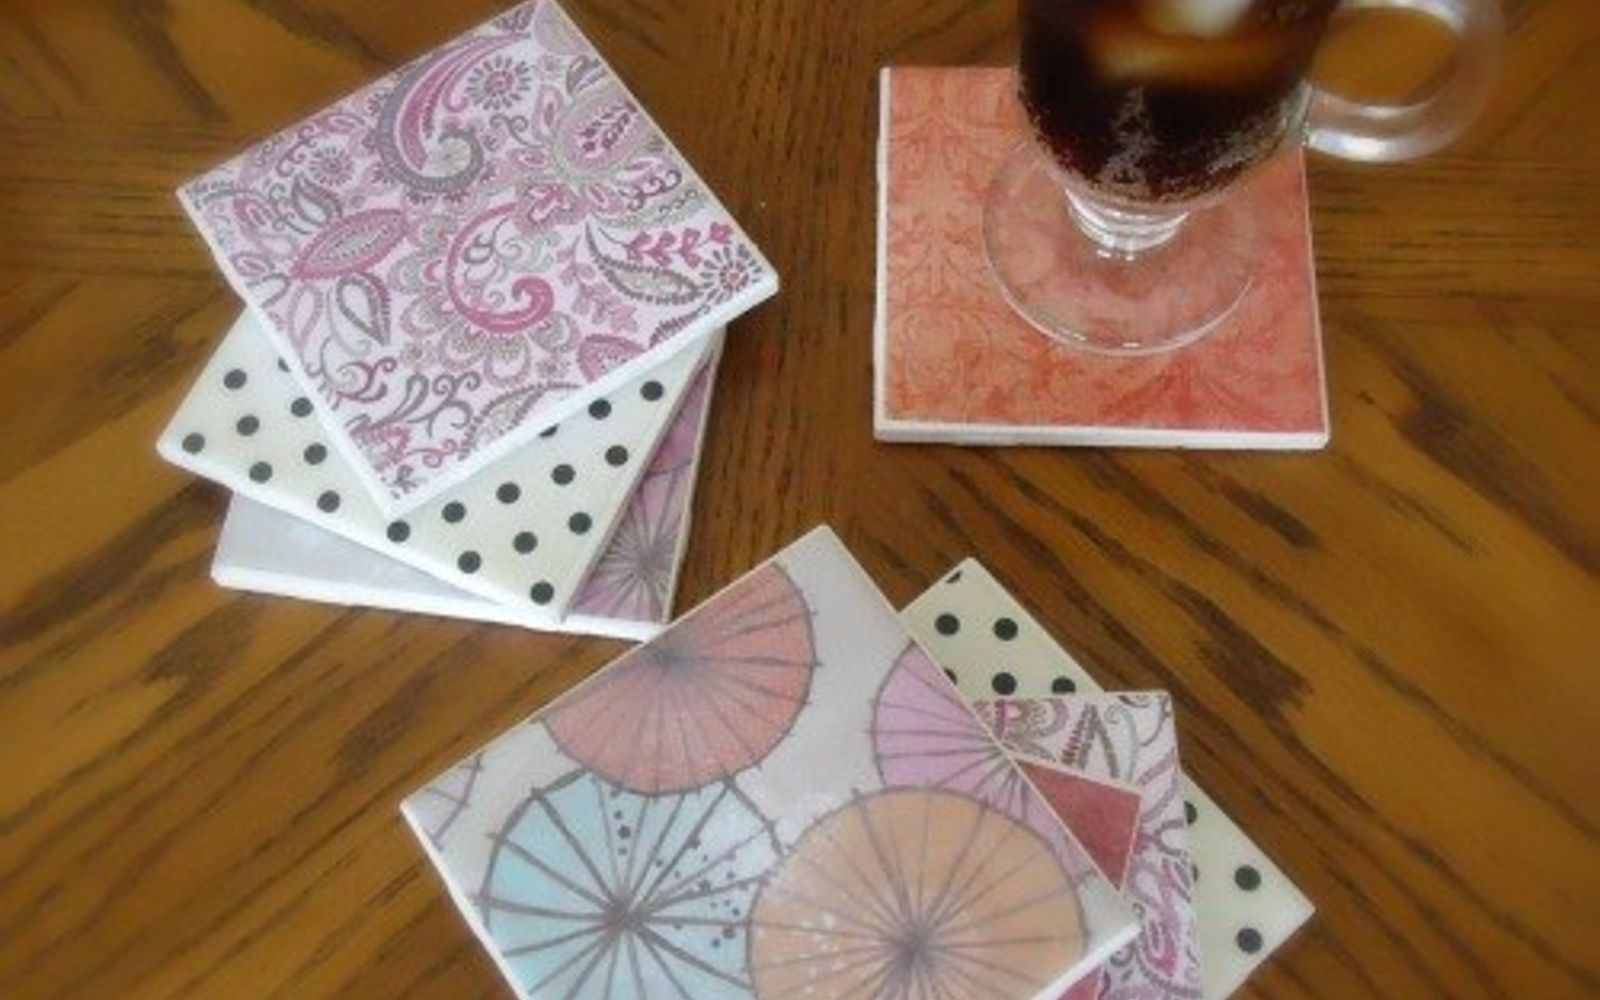 s 17 high end ways to use mod podge in your home, crafts, decoupage, home decor, Make your own set of upscale coasters